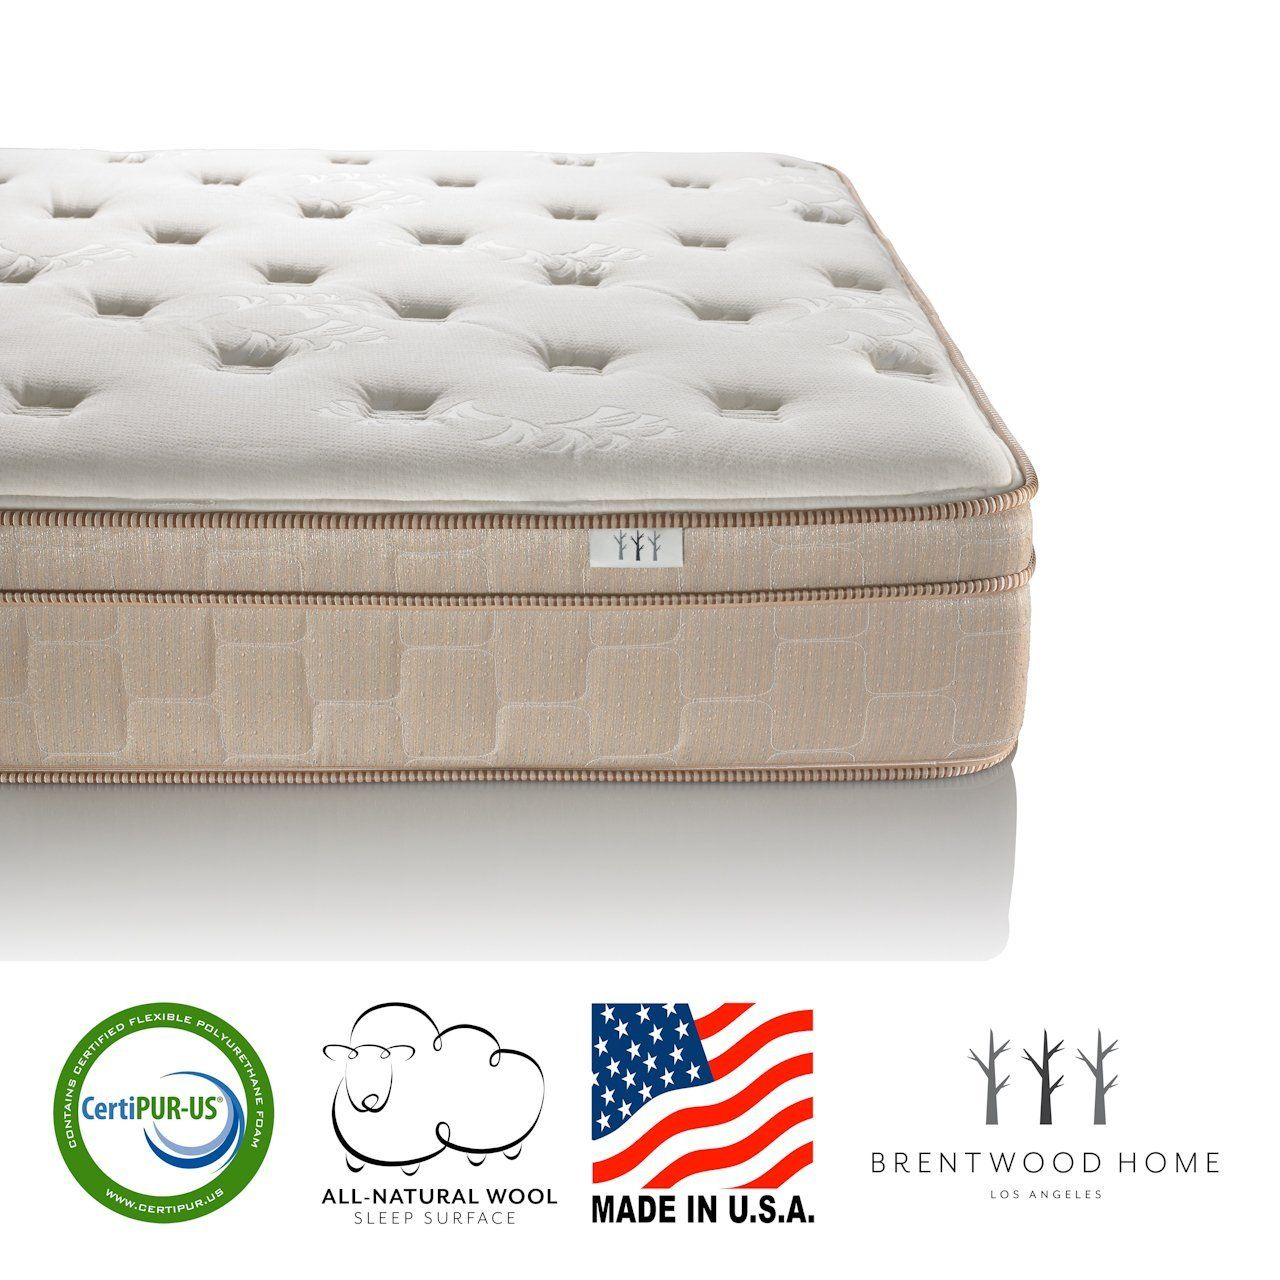 from mattress affordable brentwoodhome mattresses bedding luxury brentwood logo a l home